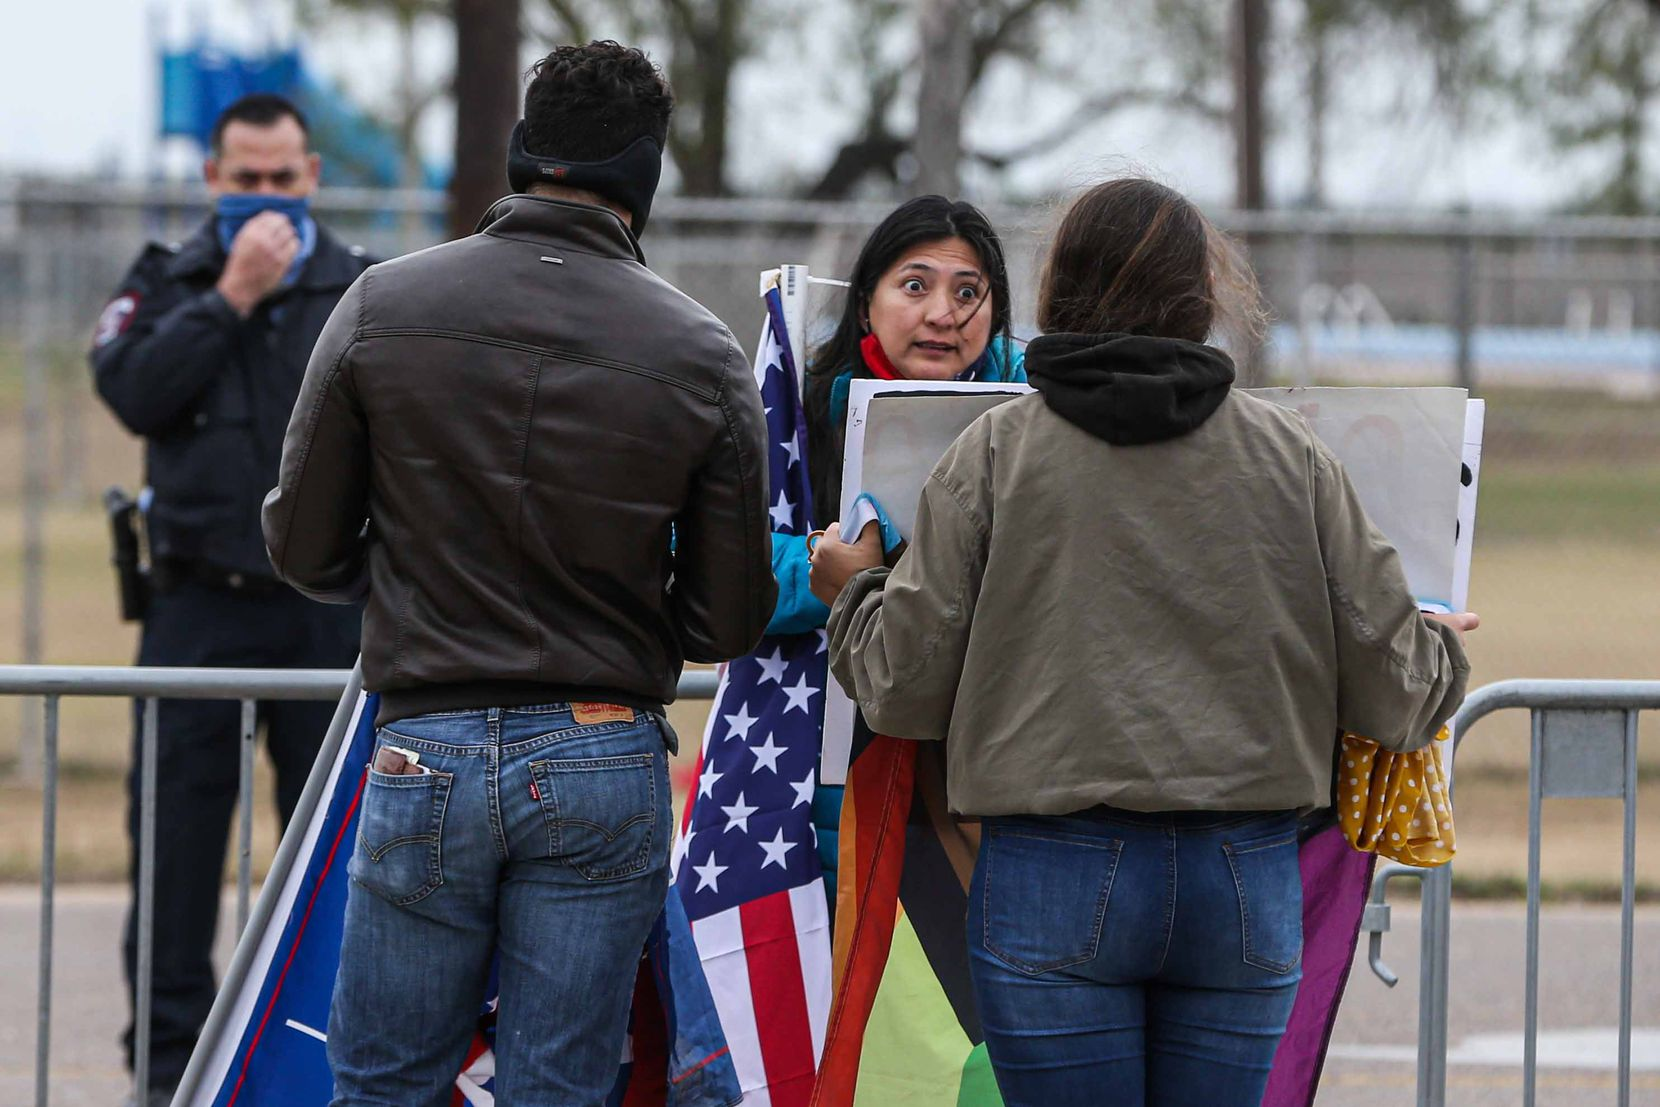 President Donald Trump supporters and president-elect Joe Biden supporters confront each other verbally during a rally as Trump is scheduled to visit part of the wall built under his mandate in McAllen on Tuesday, January 12, 2021.